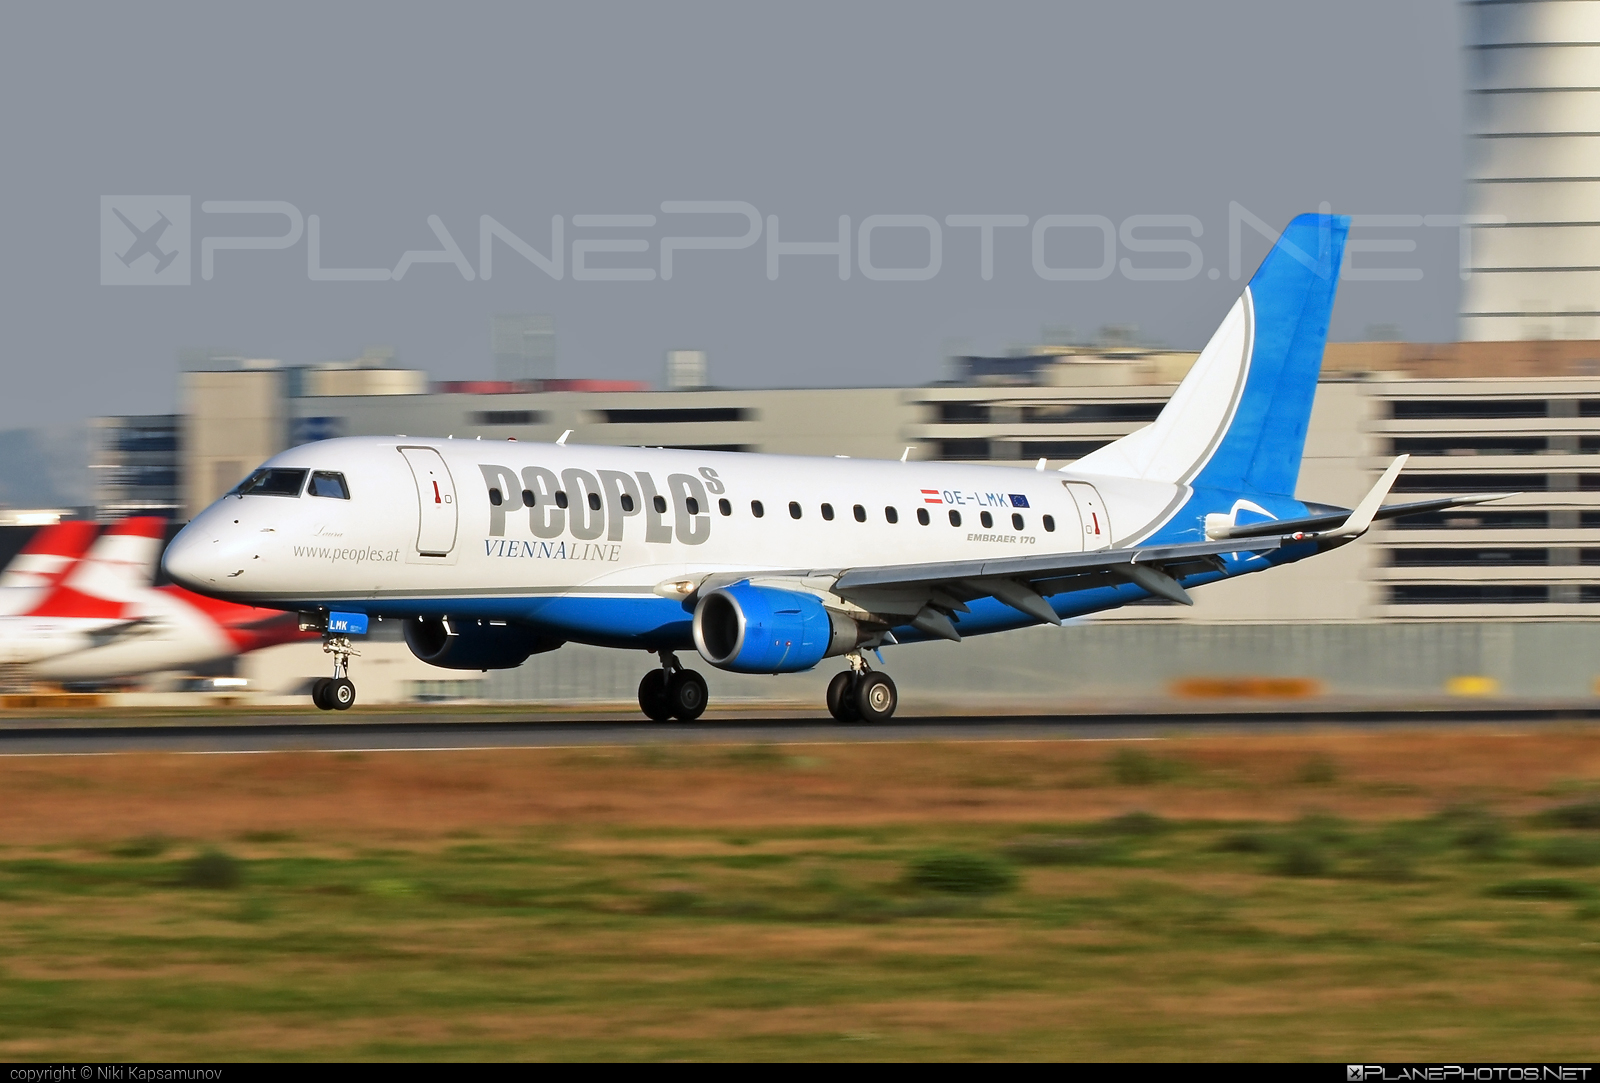 Embraer 170-100LR - OE-LMK operated by People`s Viennaline #embraer